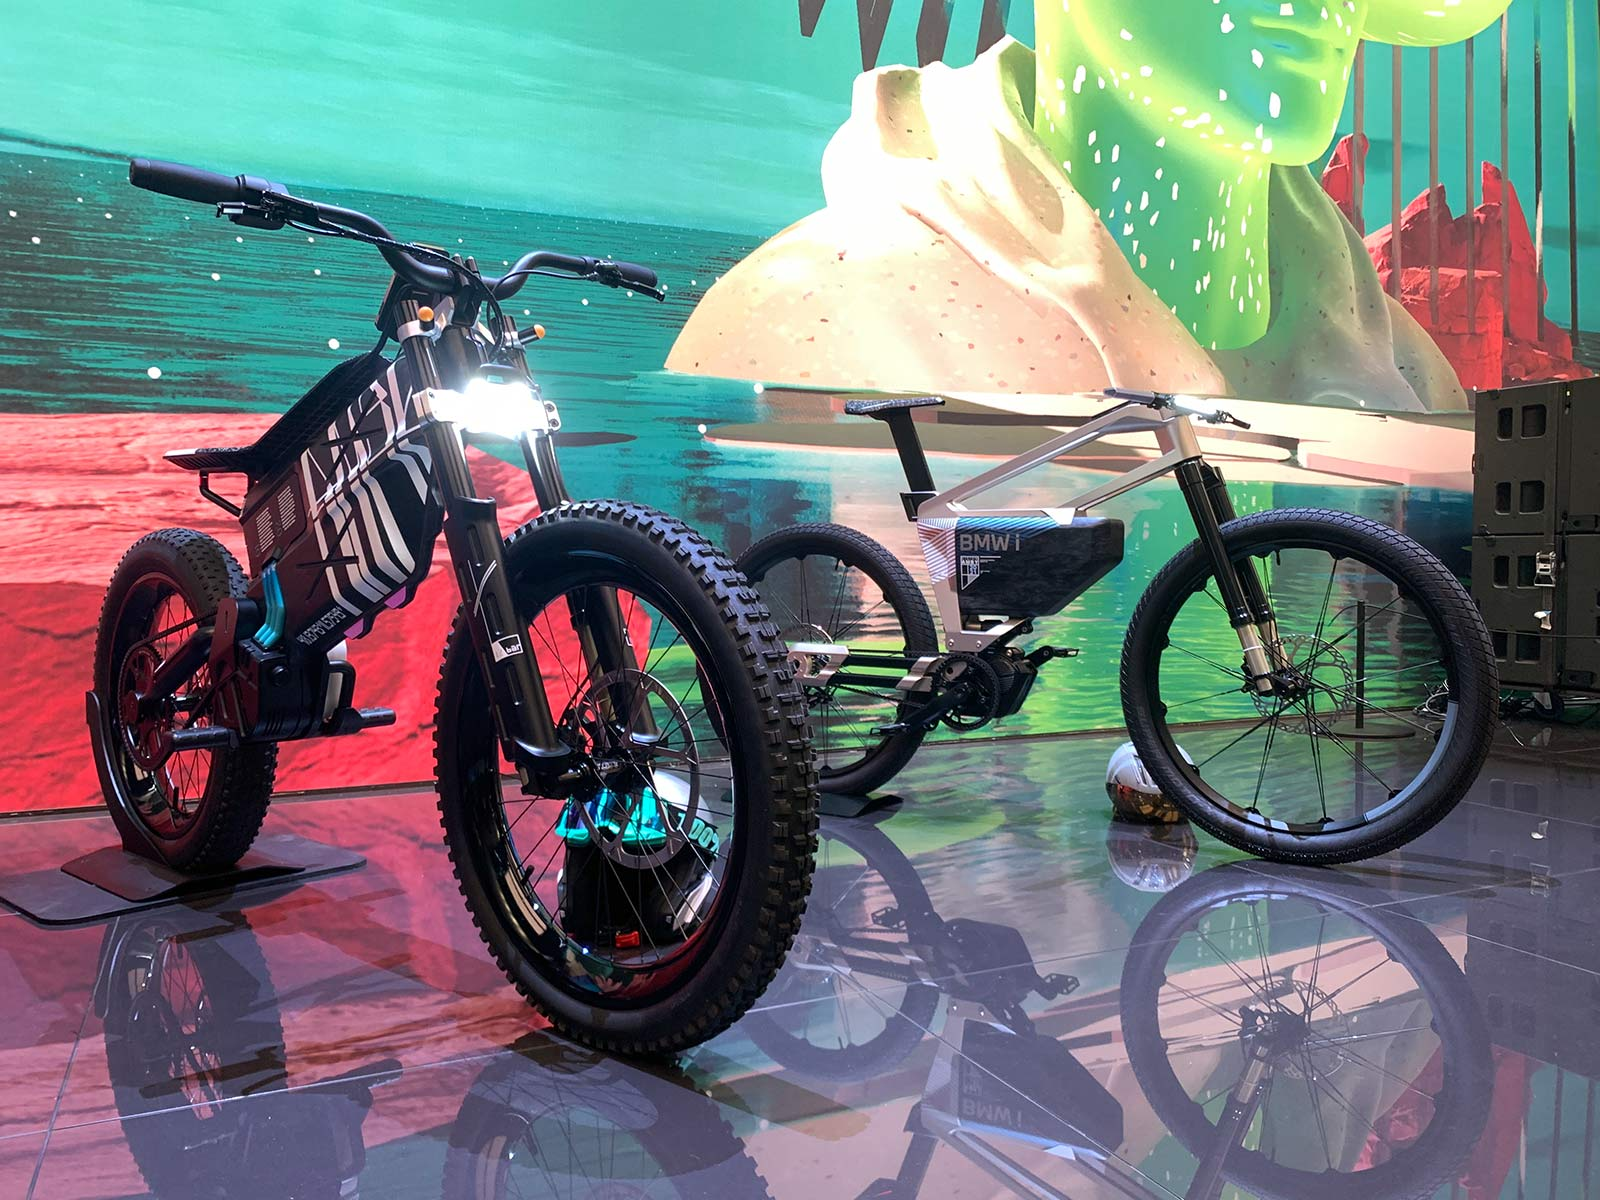 BMW electric moto dirt bike concept with eMTB prototype behind it